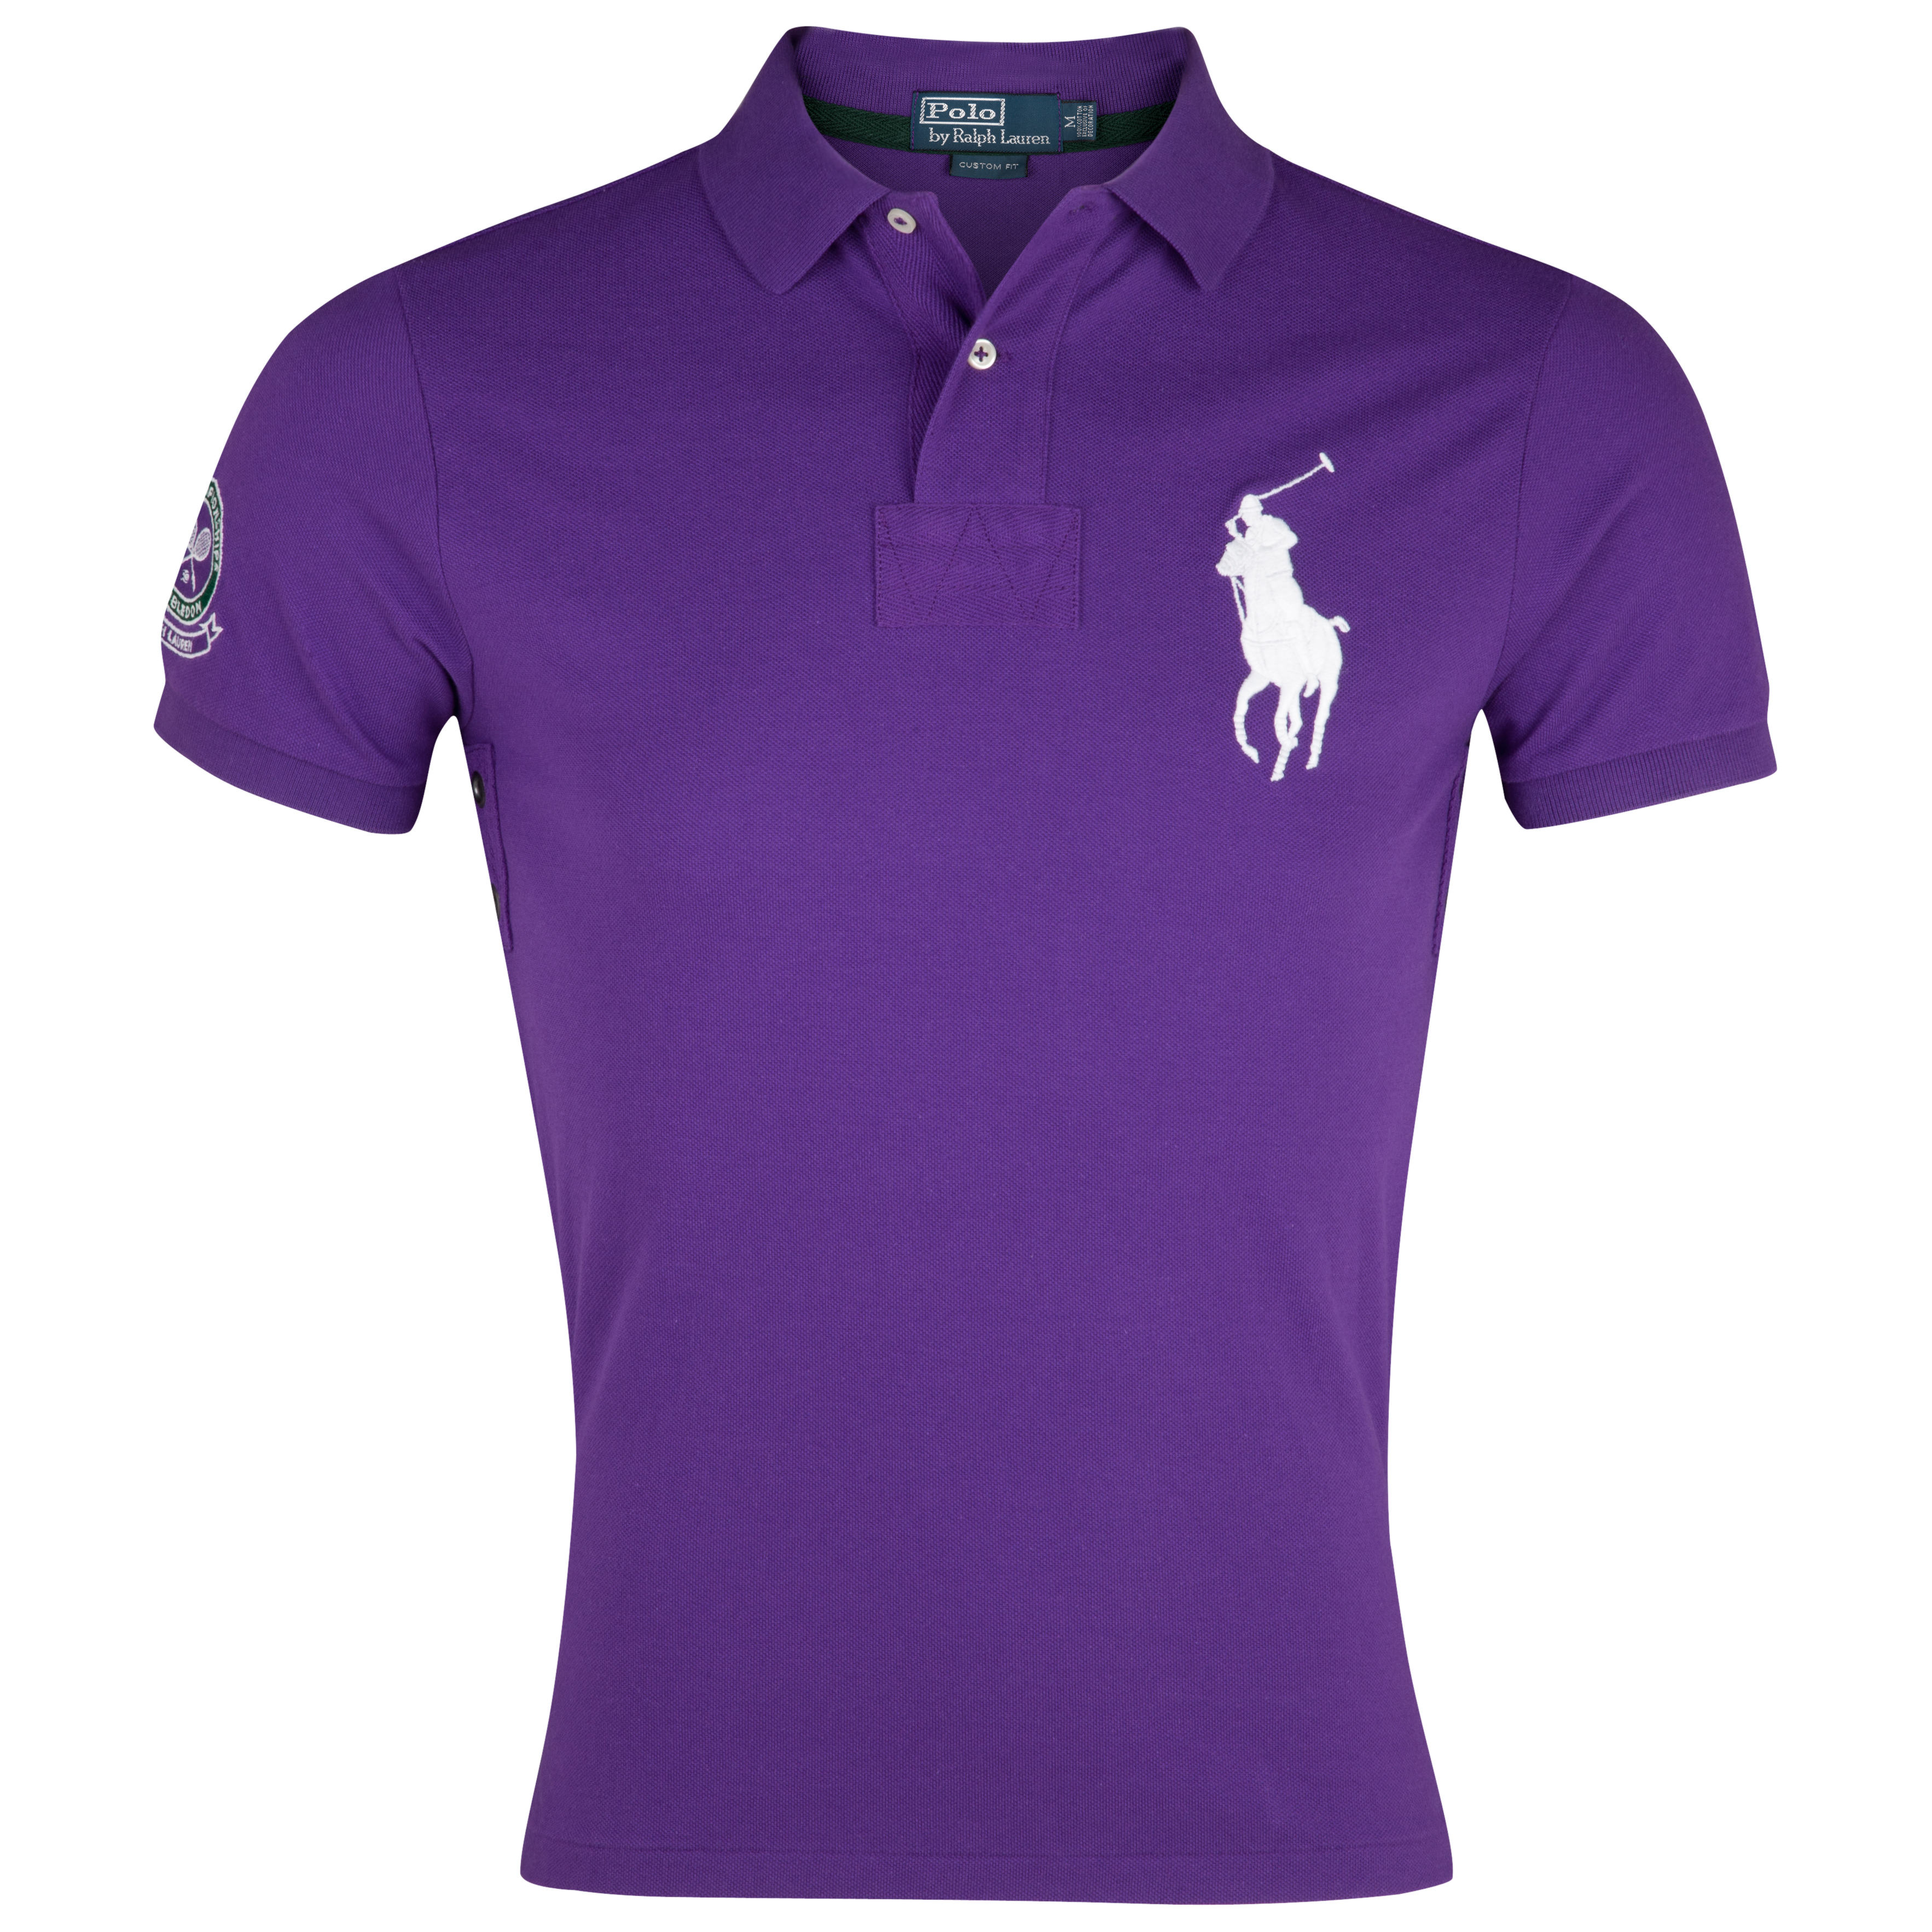 Polo Ralph Lauren Polo Short Sleeve Polo - Empire Purple